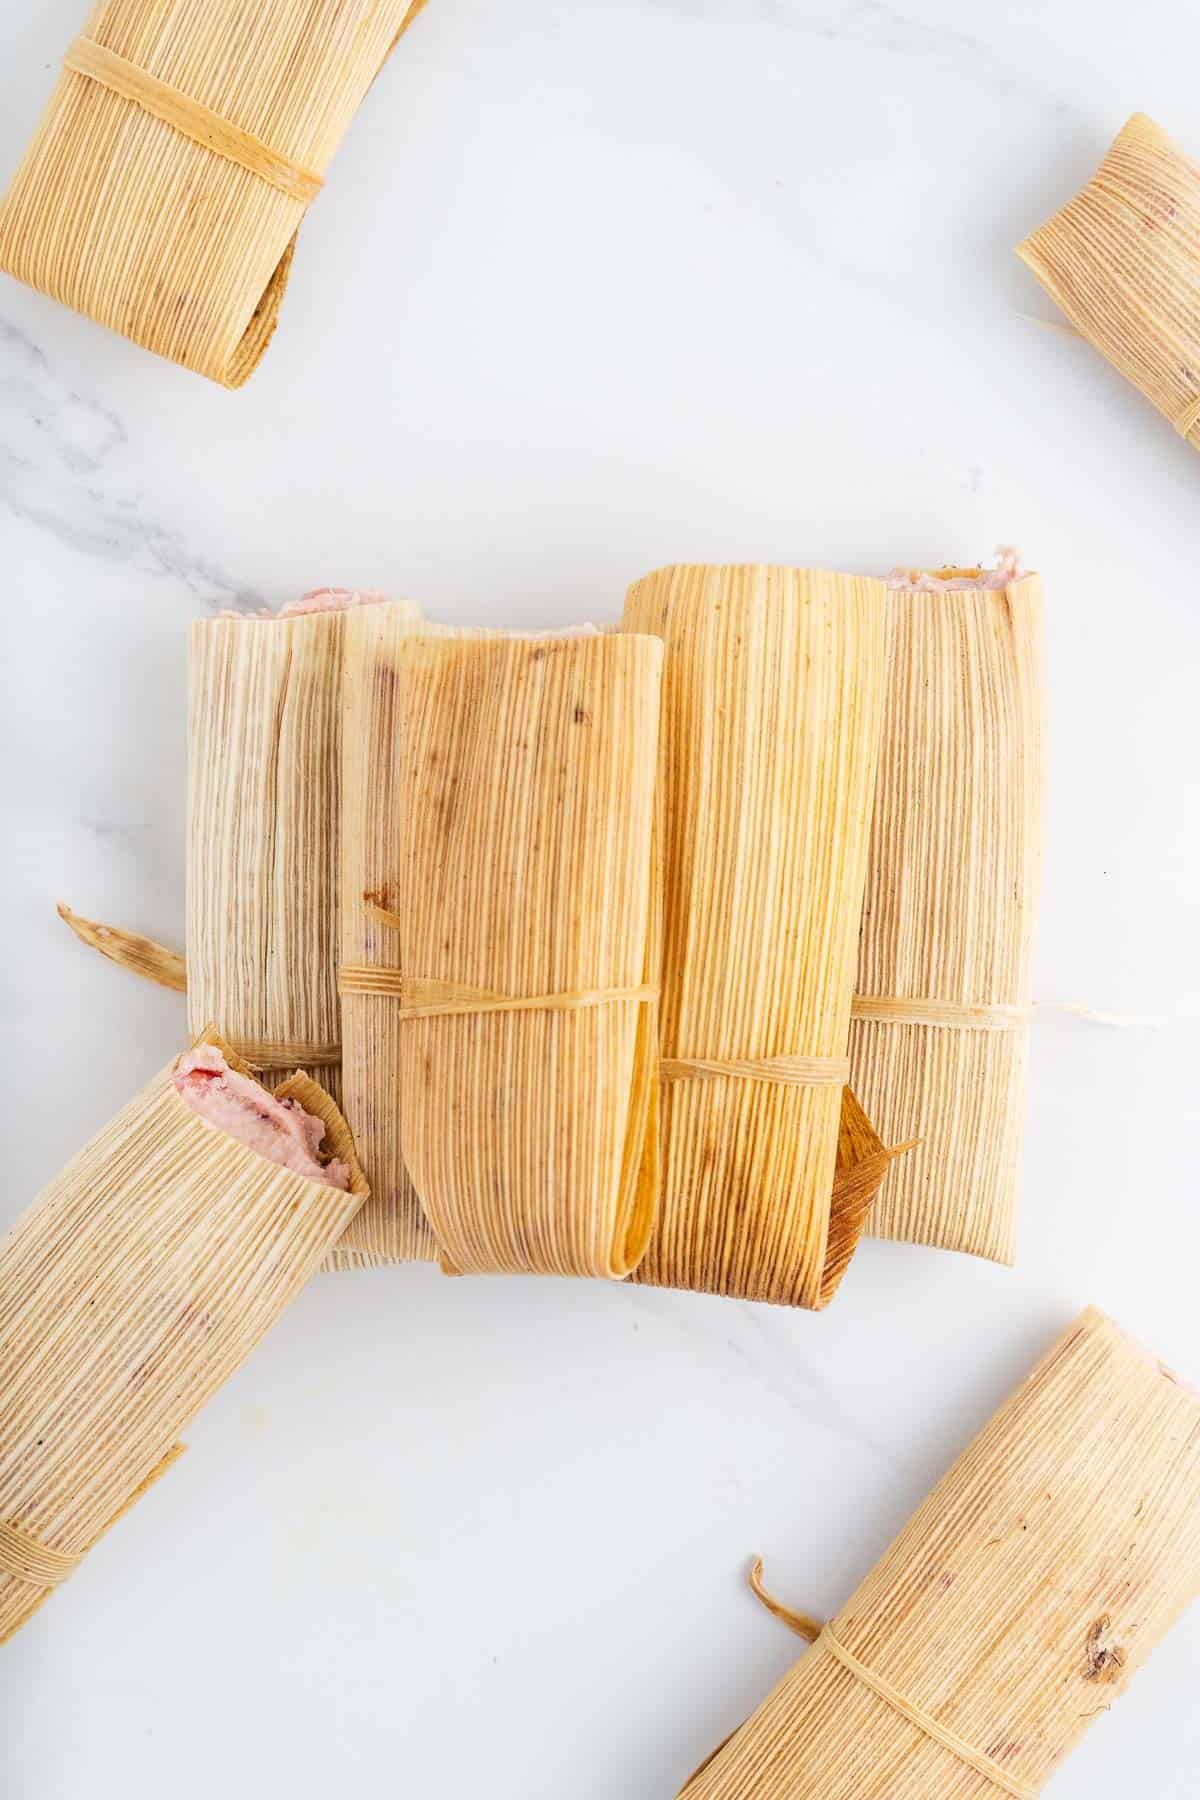 Pile of Strawberry Tamales